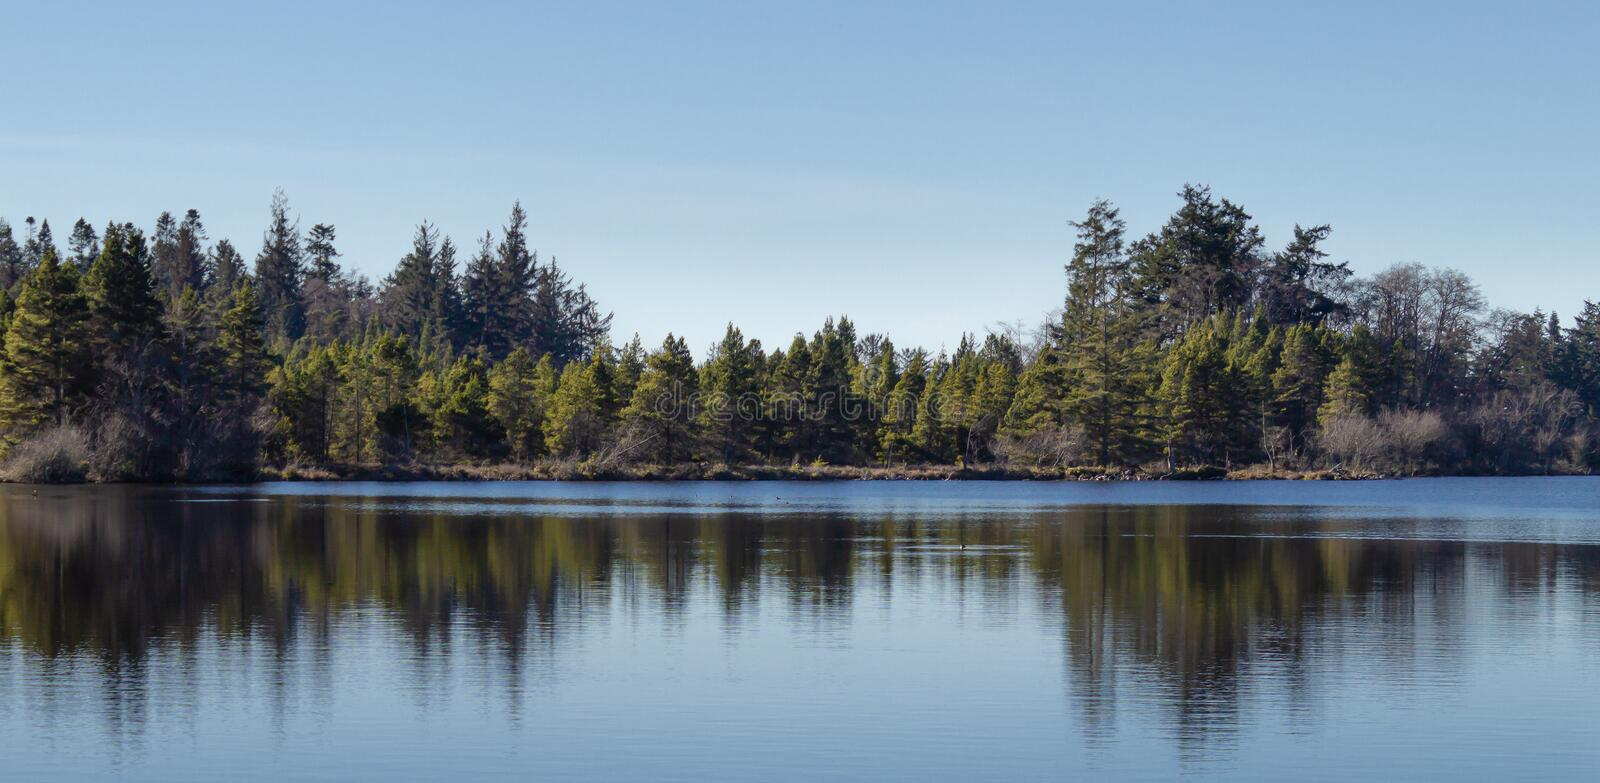 Tree reflections on the smooth clear waters of Cranberry Lake at Deception Pass, Washington. stock photos